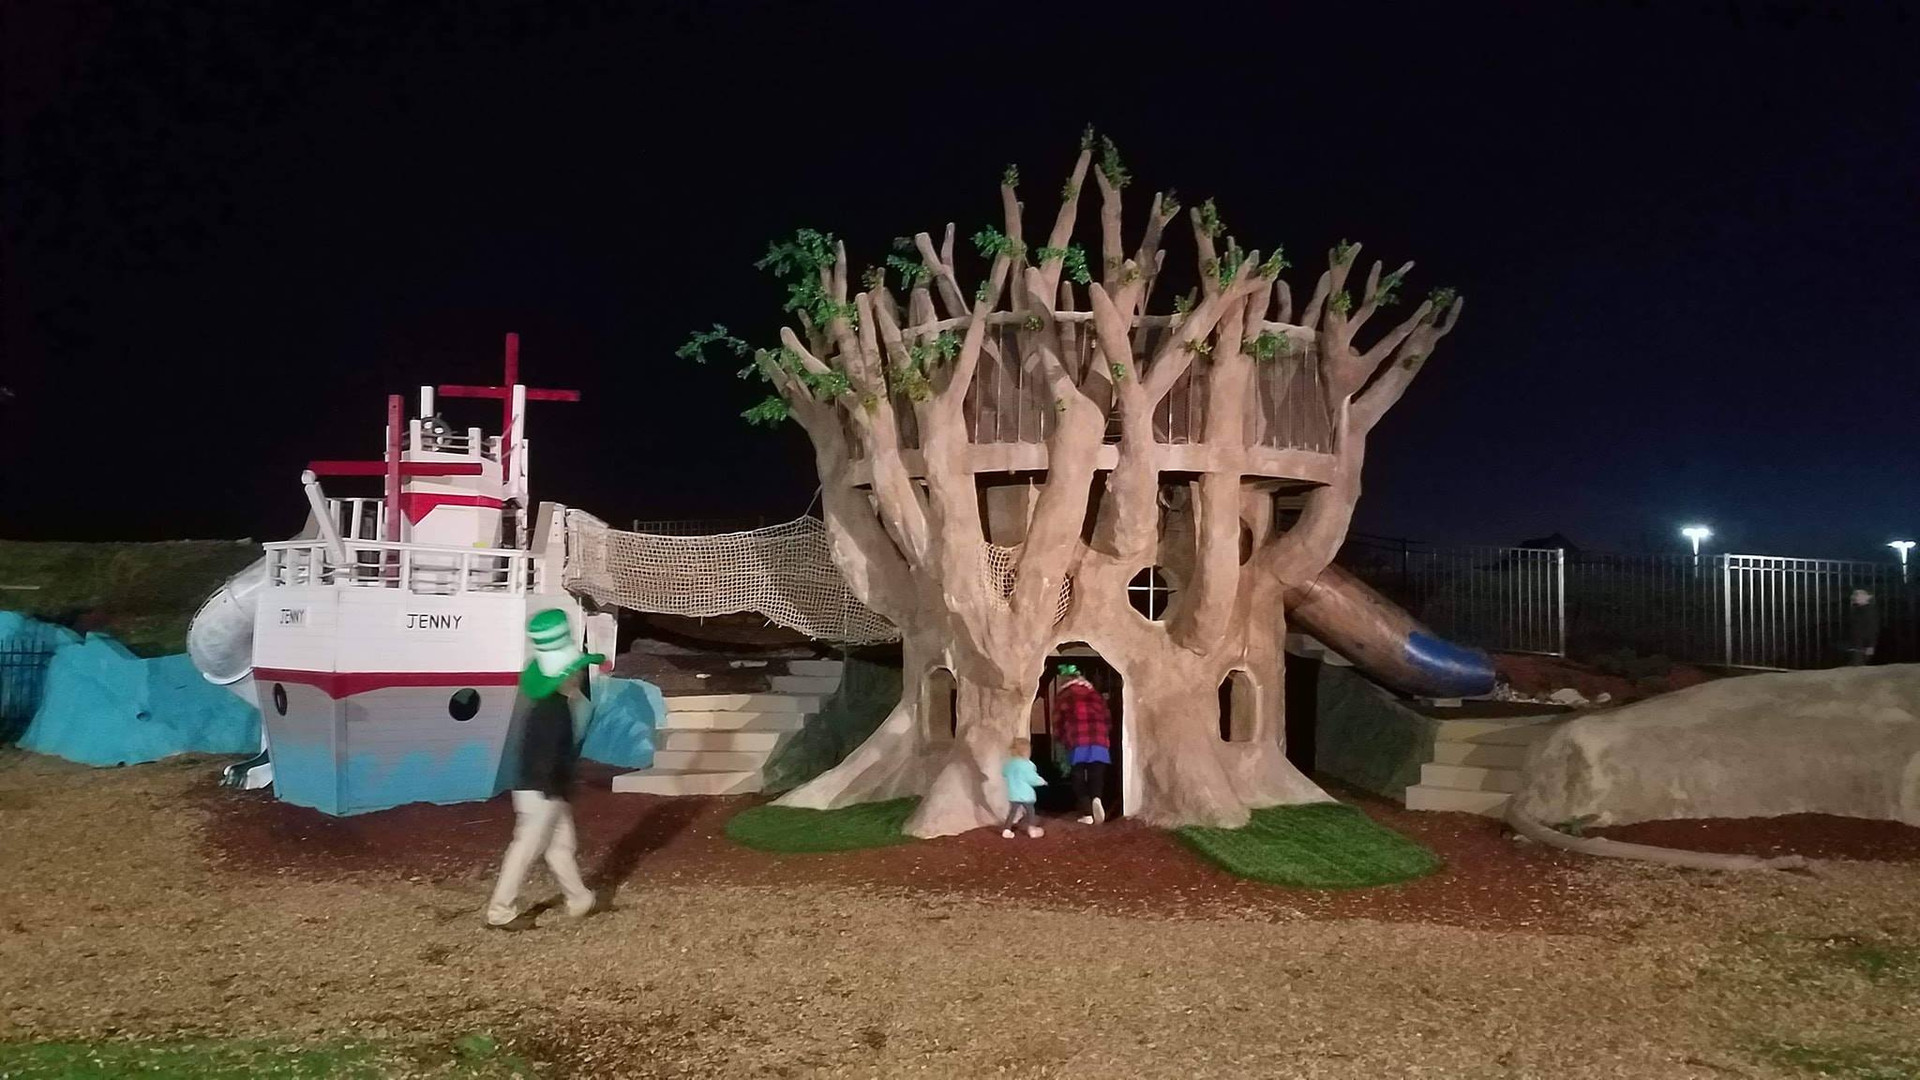 Playscape at night